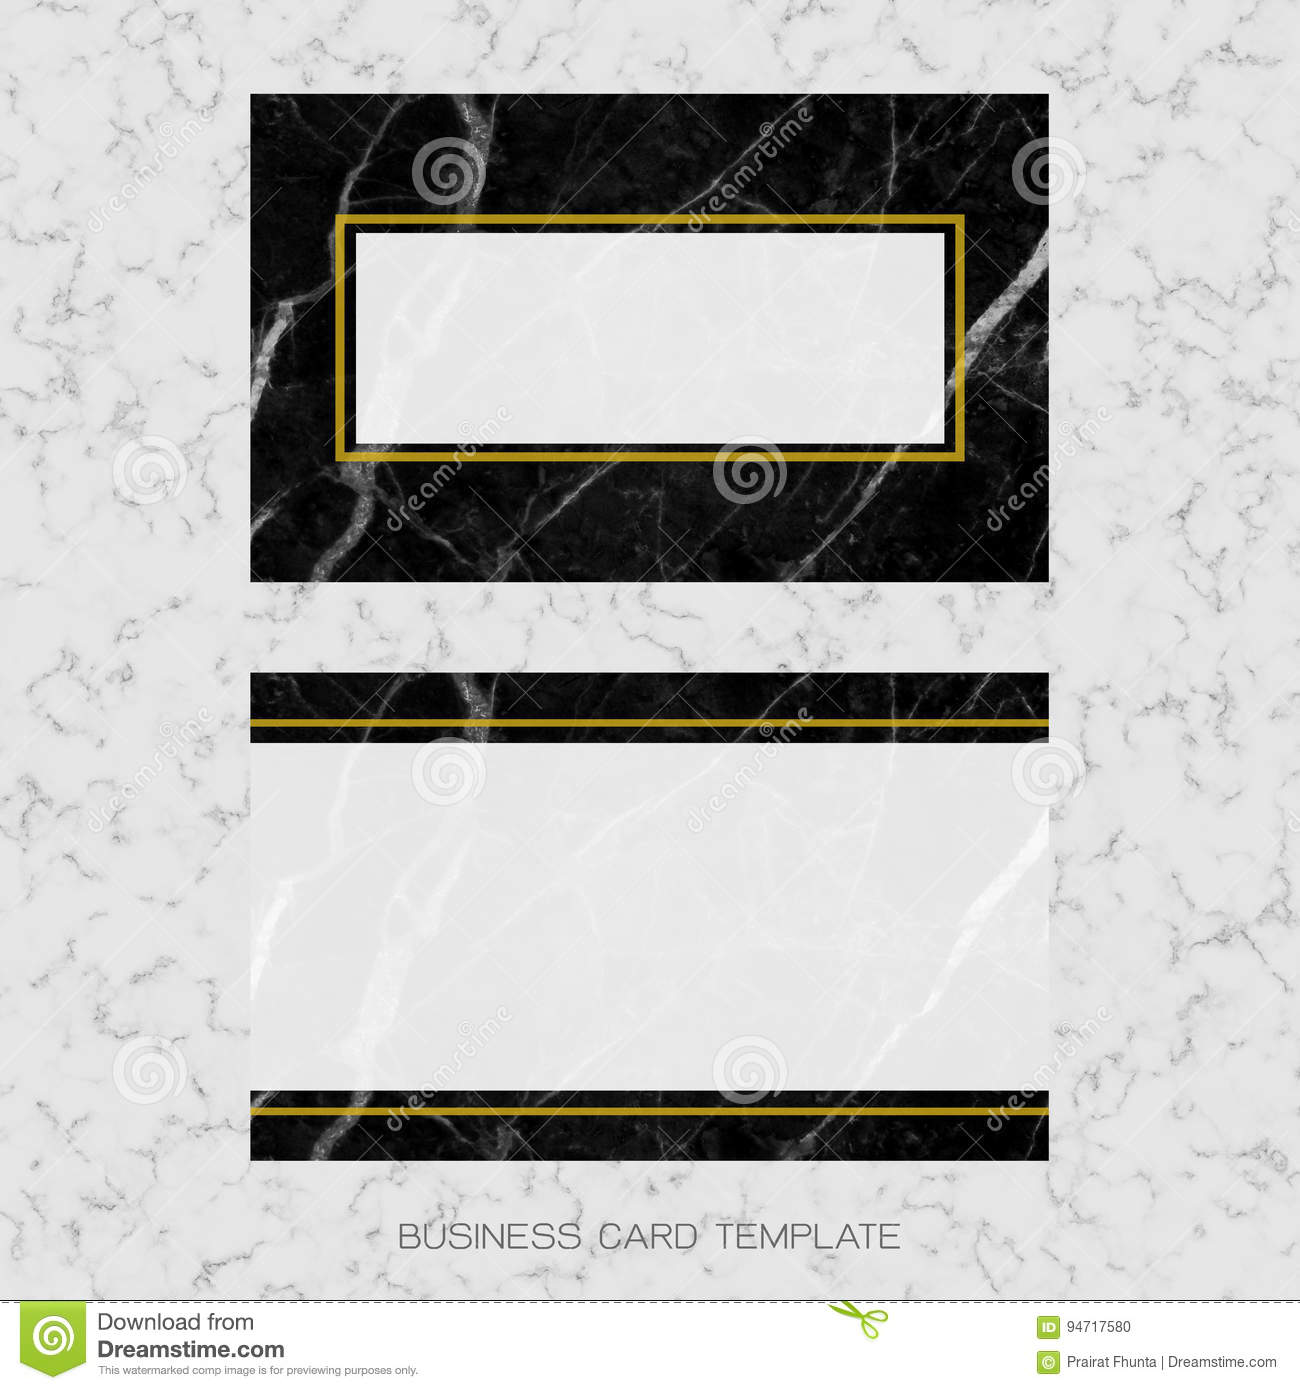 Modern business card layout template stock illustration download modern business card layout template stock illustration illustration of gift contact 94717580 fbccfo Images